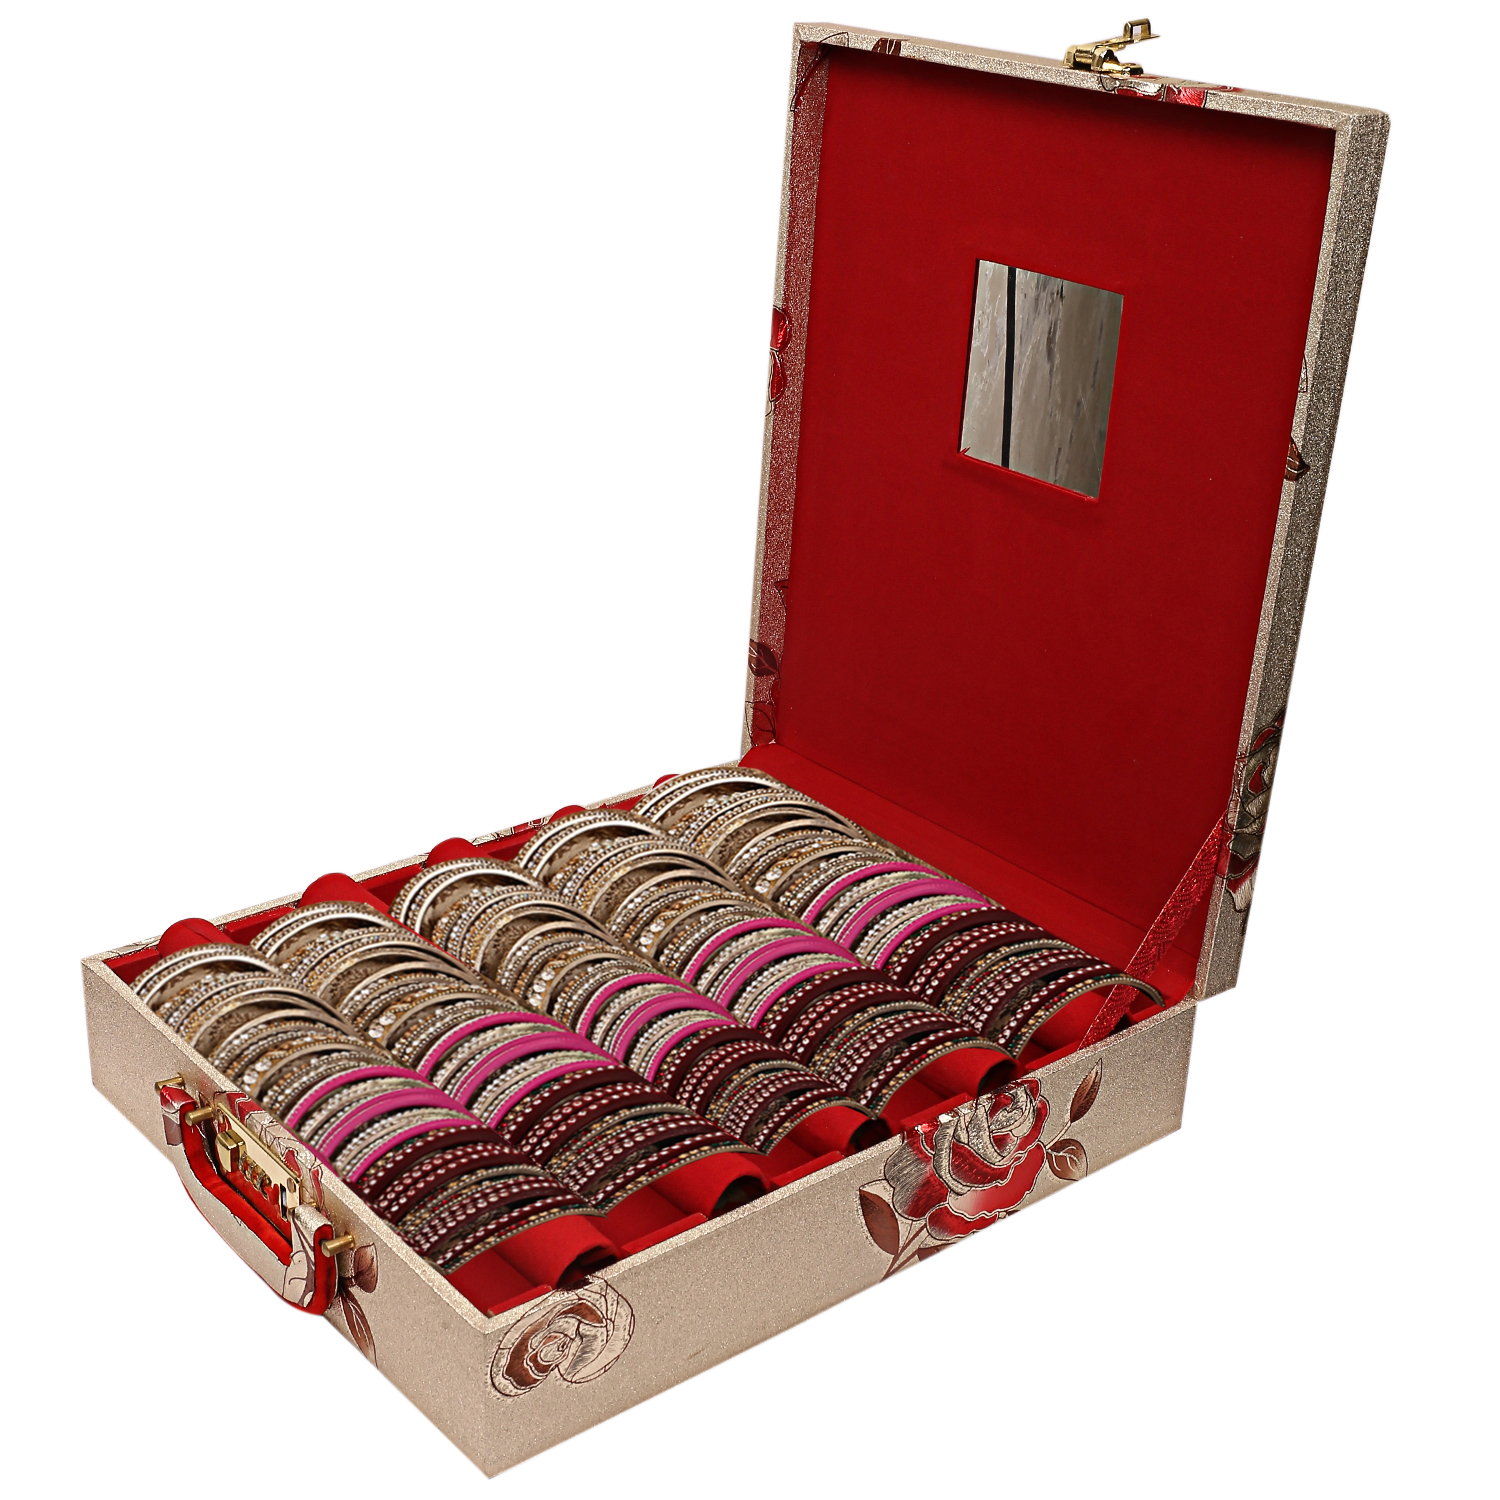 Kuber Industries Wooden 1 Piece Five Rod Bangle Storage Box with Lock System (Gold) -CTKTC6849